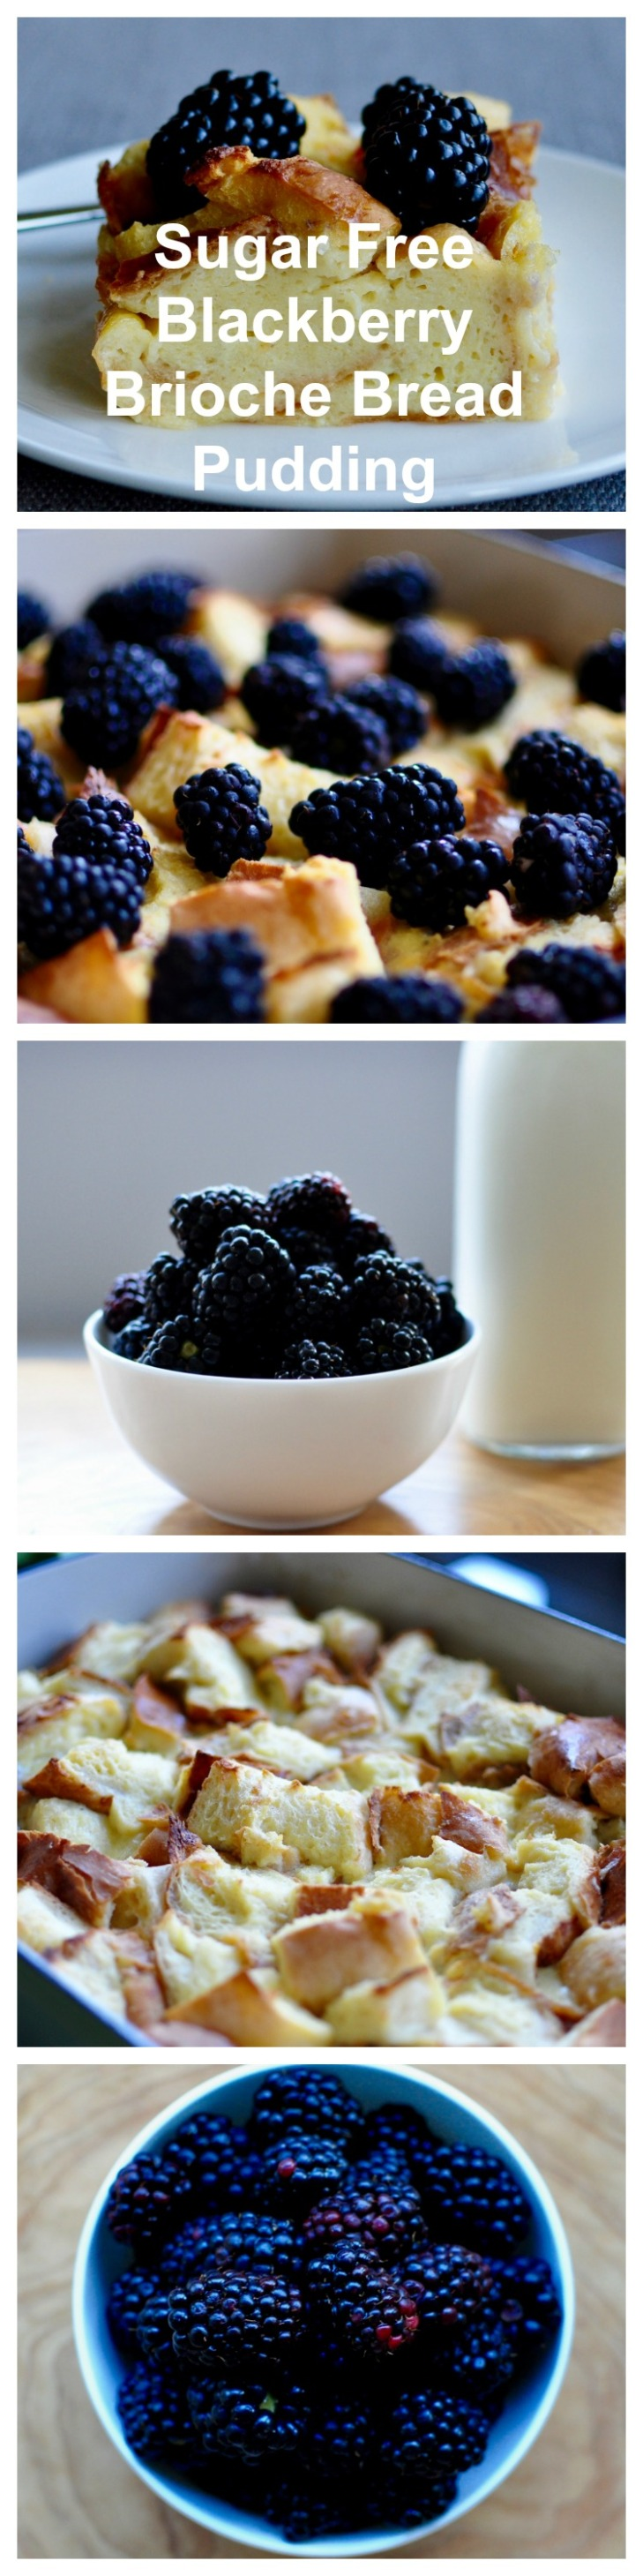 Sugar Free Blackberry Brioche Bread Pudding